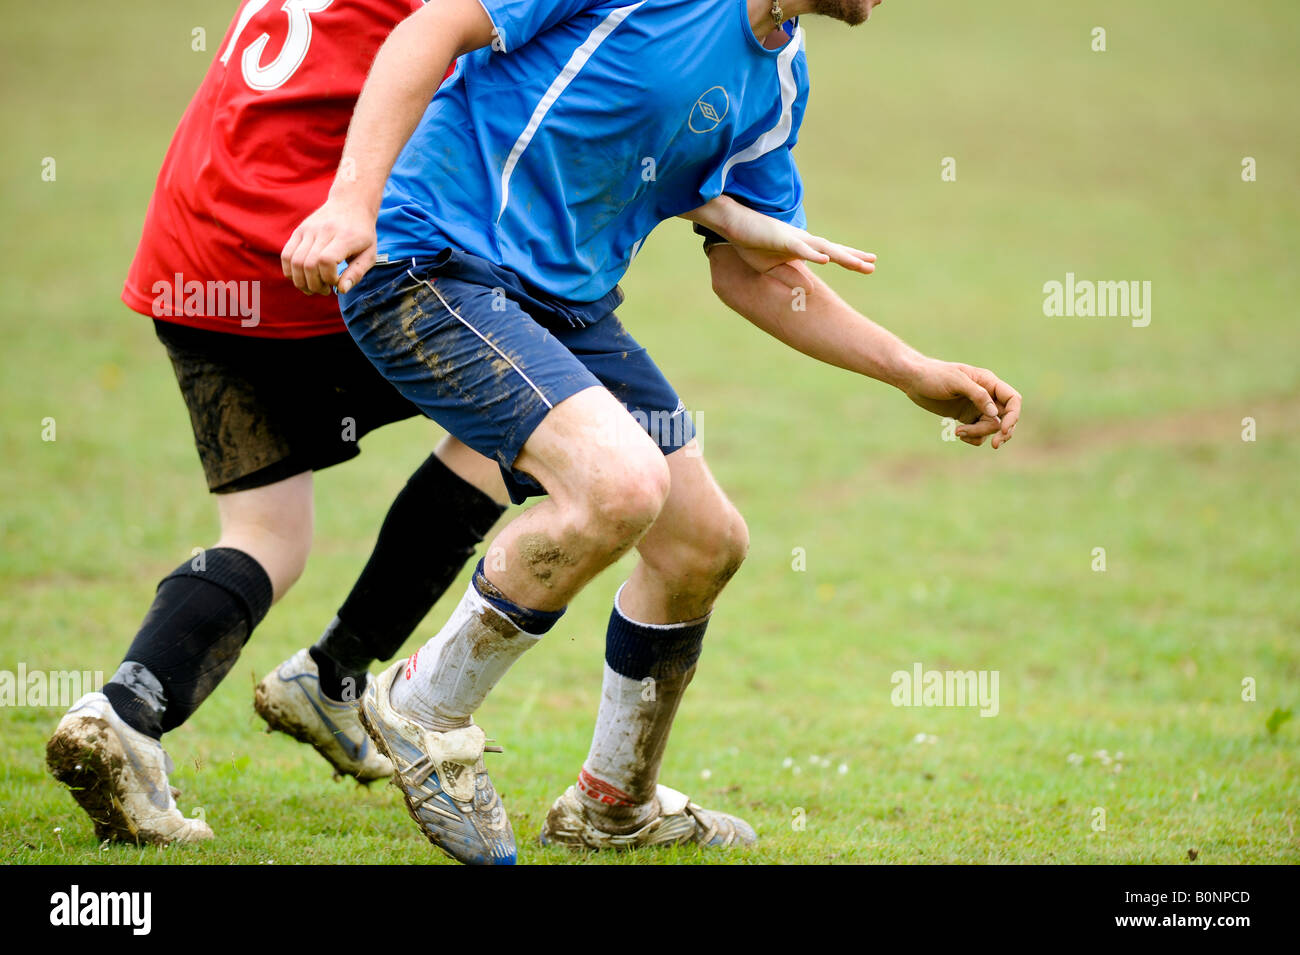 Park life football: two players battle for possession of the ball in a non league pub team clash. - Stock Image